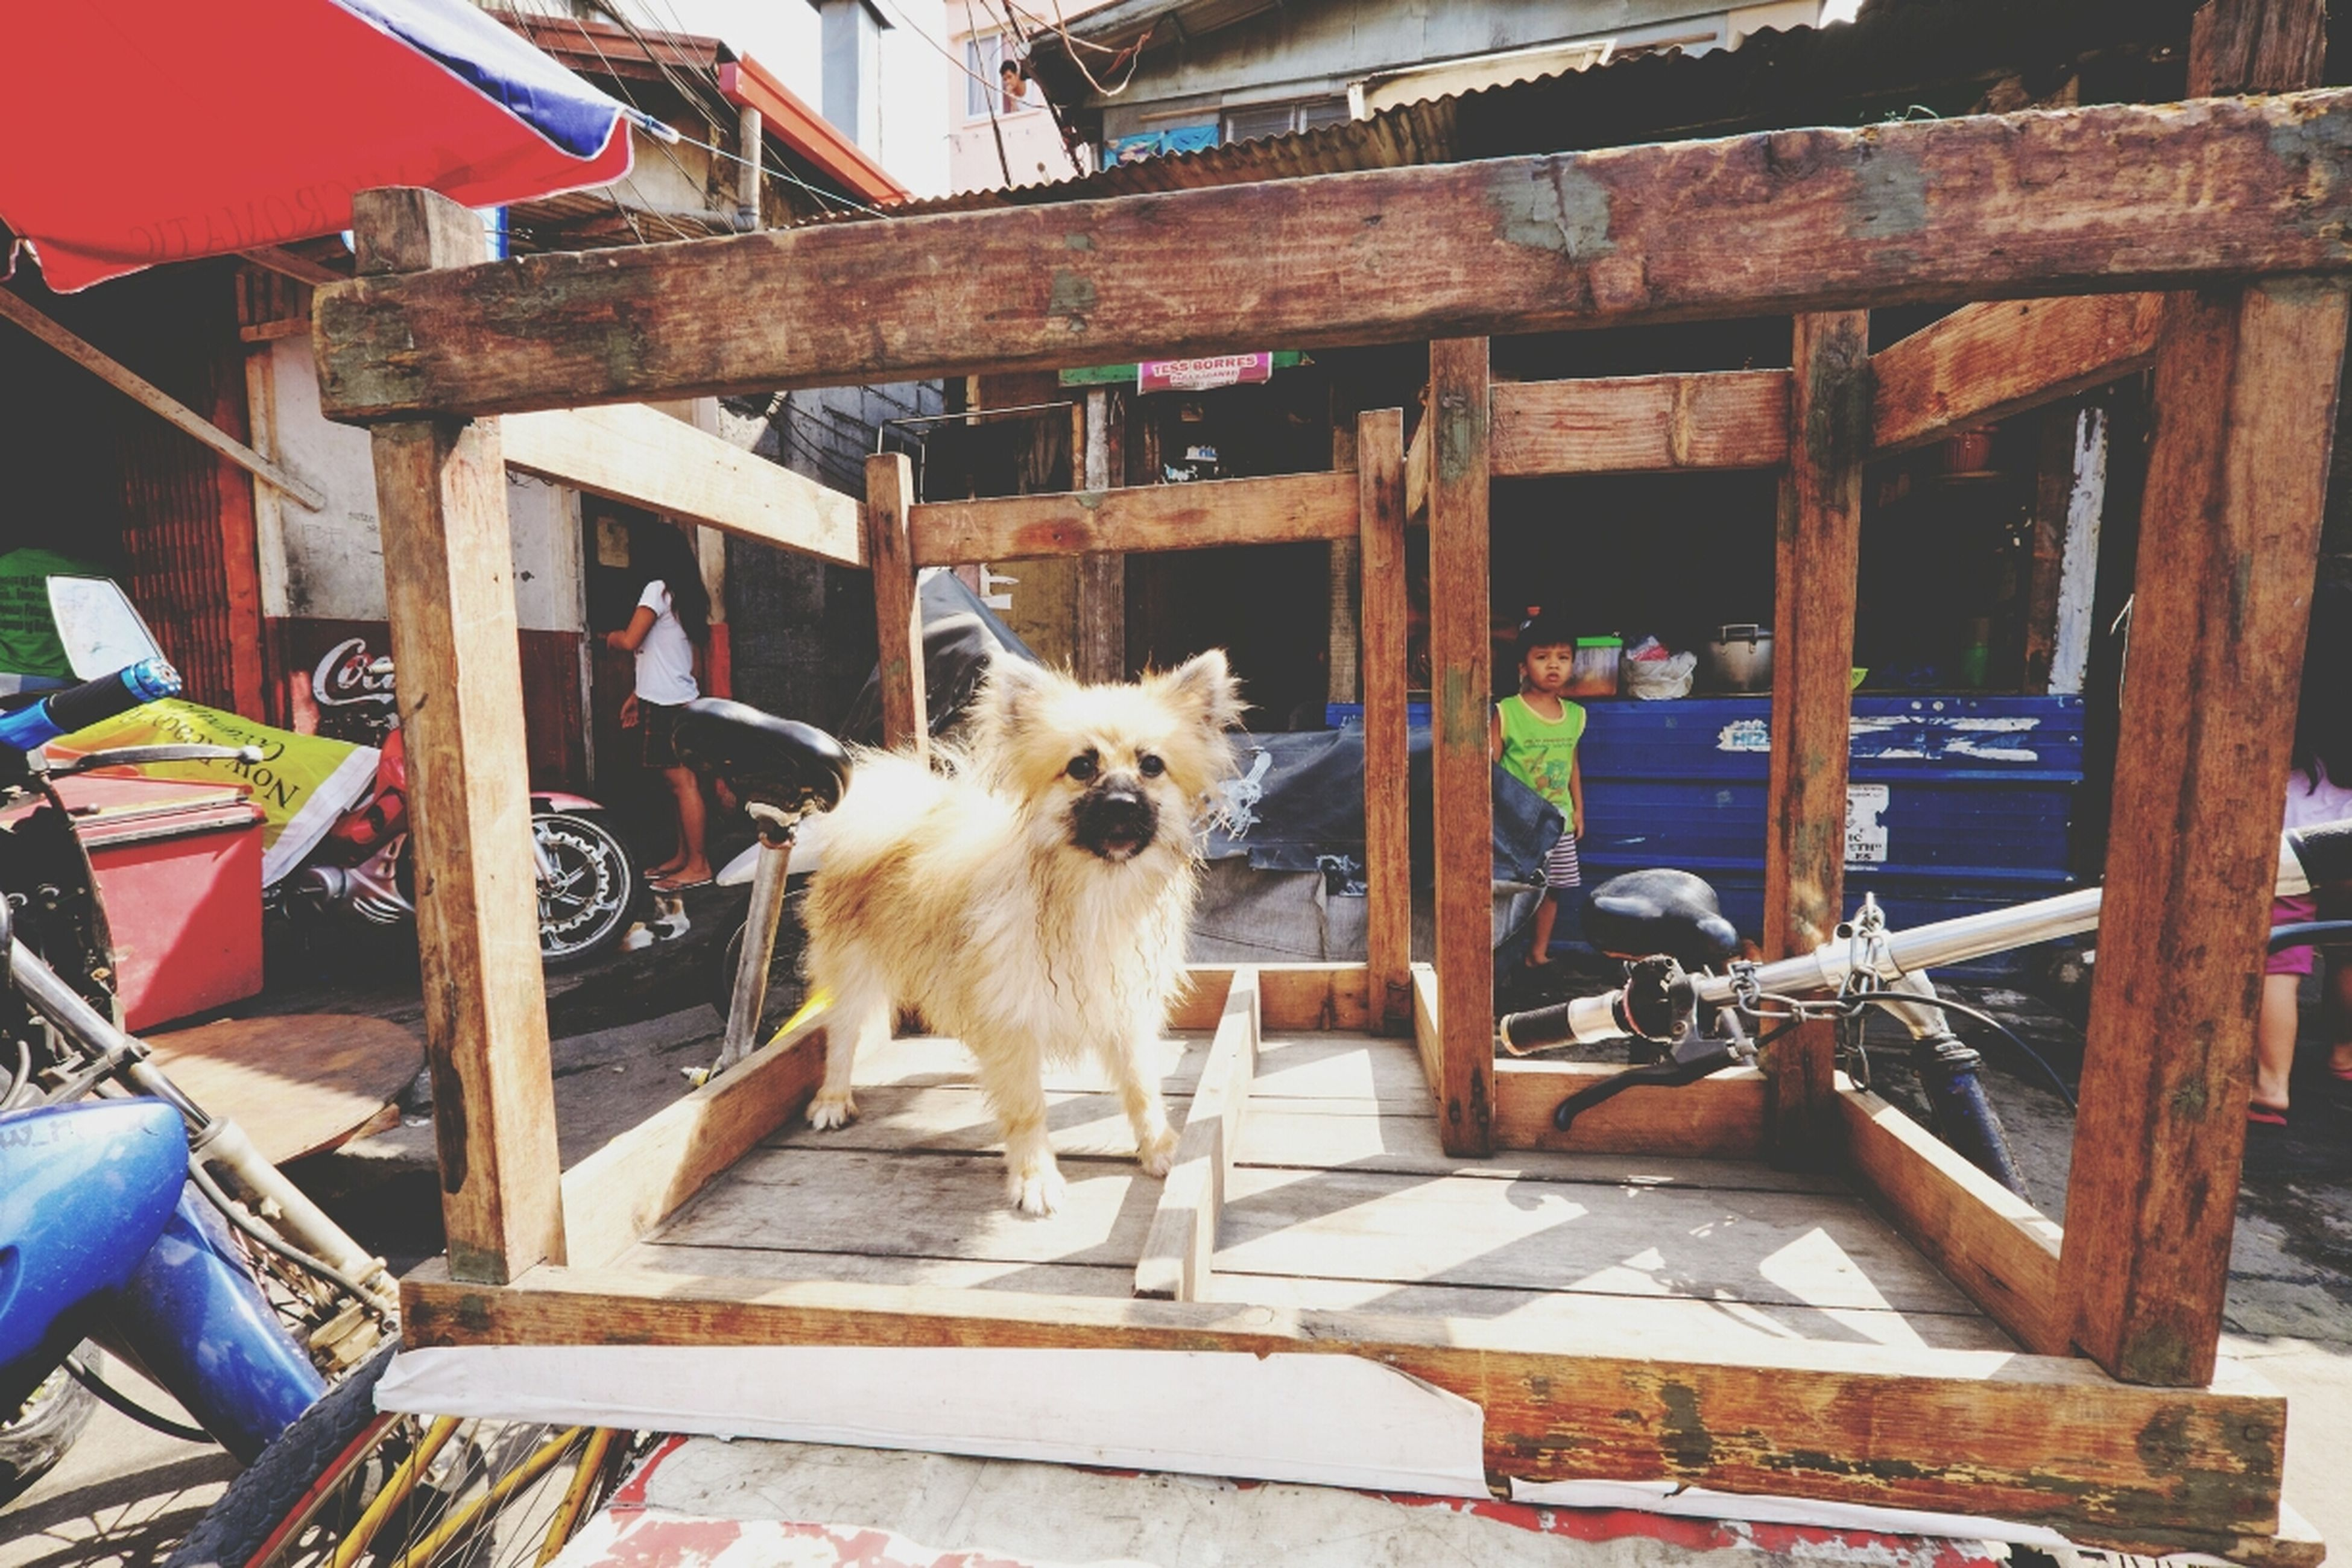 animal themes, one animal, domestic animals, mammal, wood - material, pets, built structure, sitting, wooden, railing, dog, full length, architecture, day, outdoors, wood, steps, standing, building exterior, domestic cat